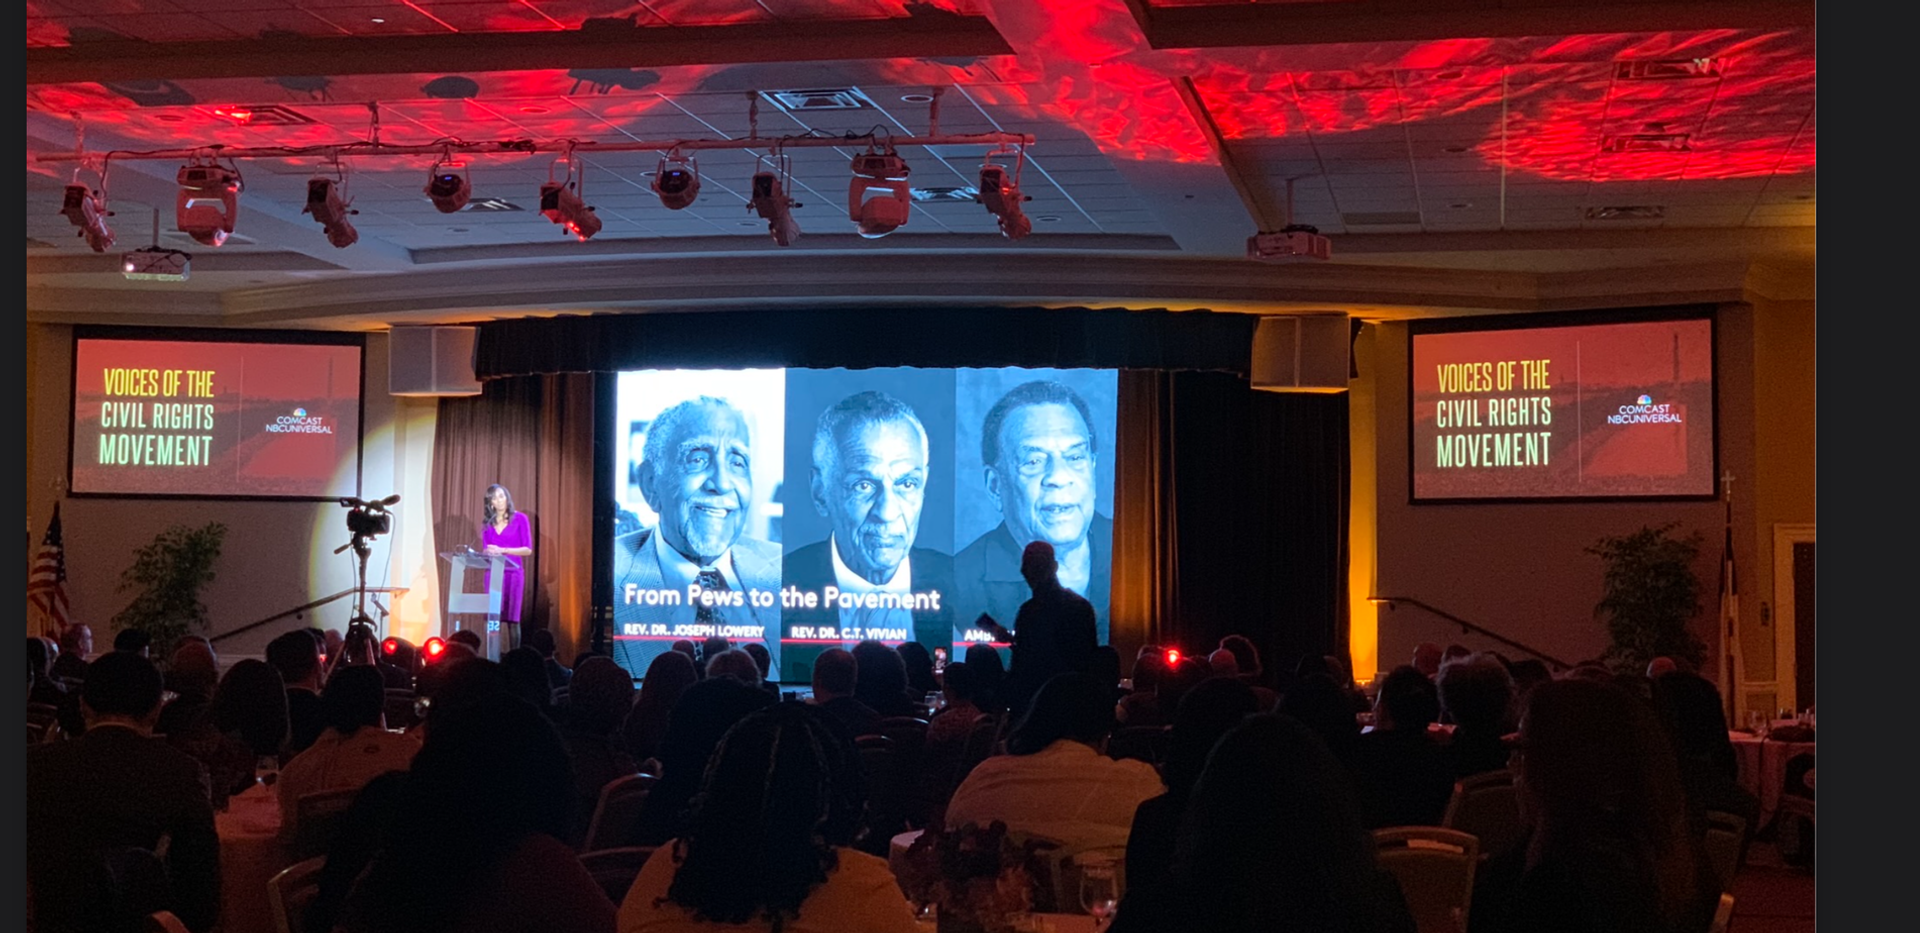 Comcast's Voices of the Civil Rights Mov